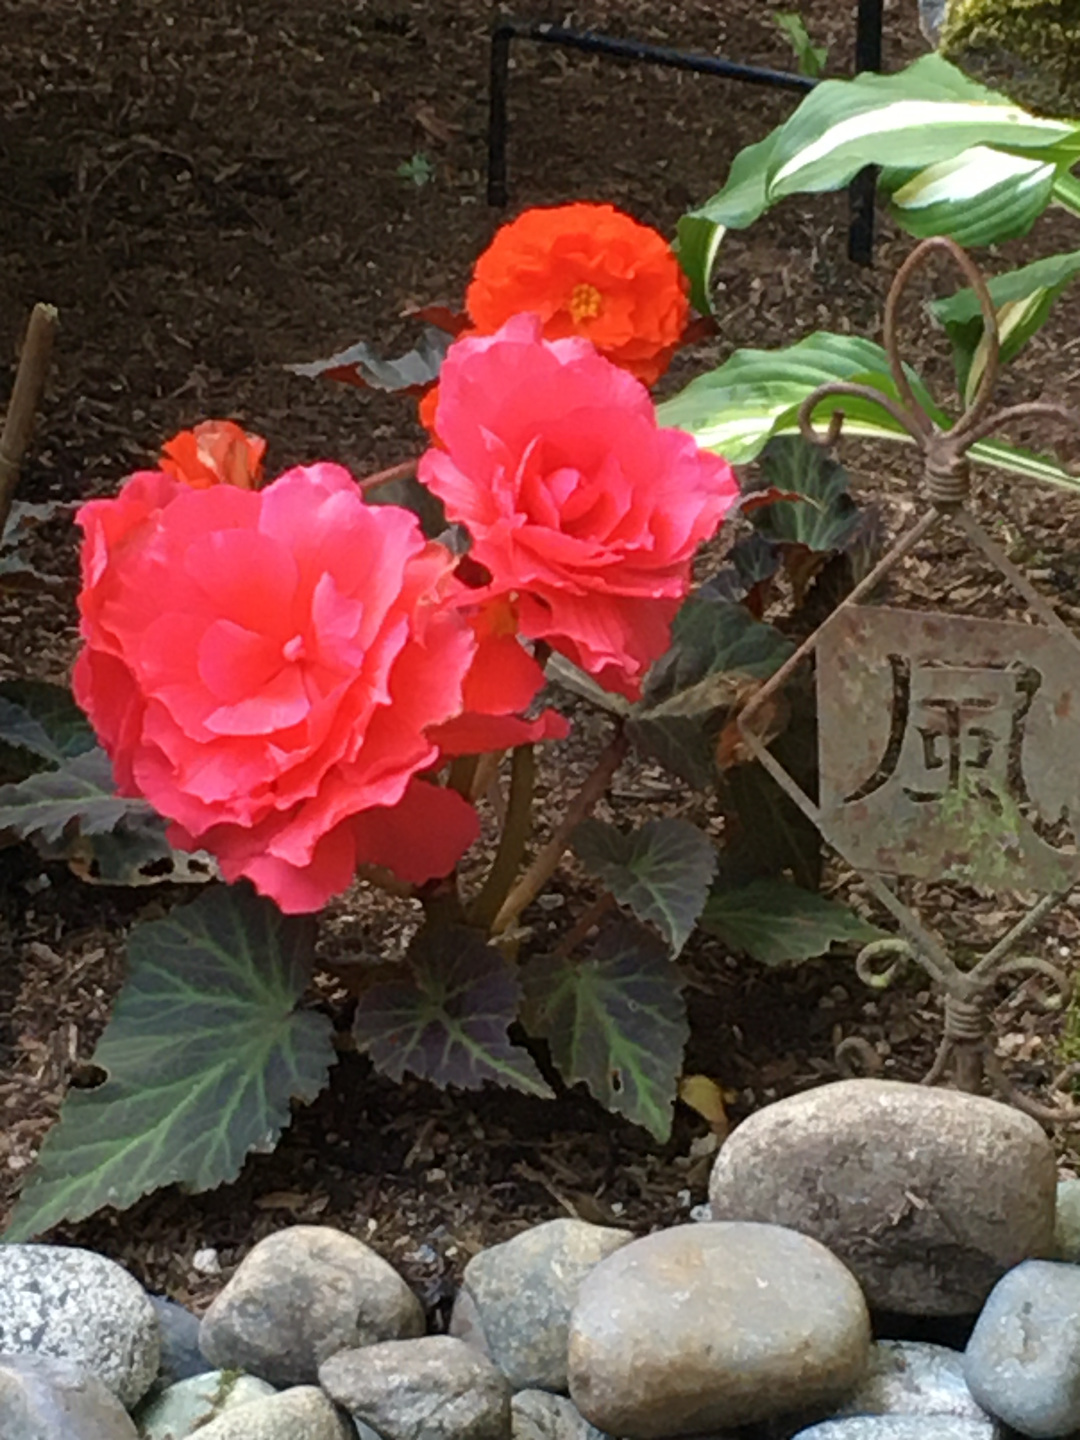 flowers of the tuberous begonia